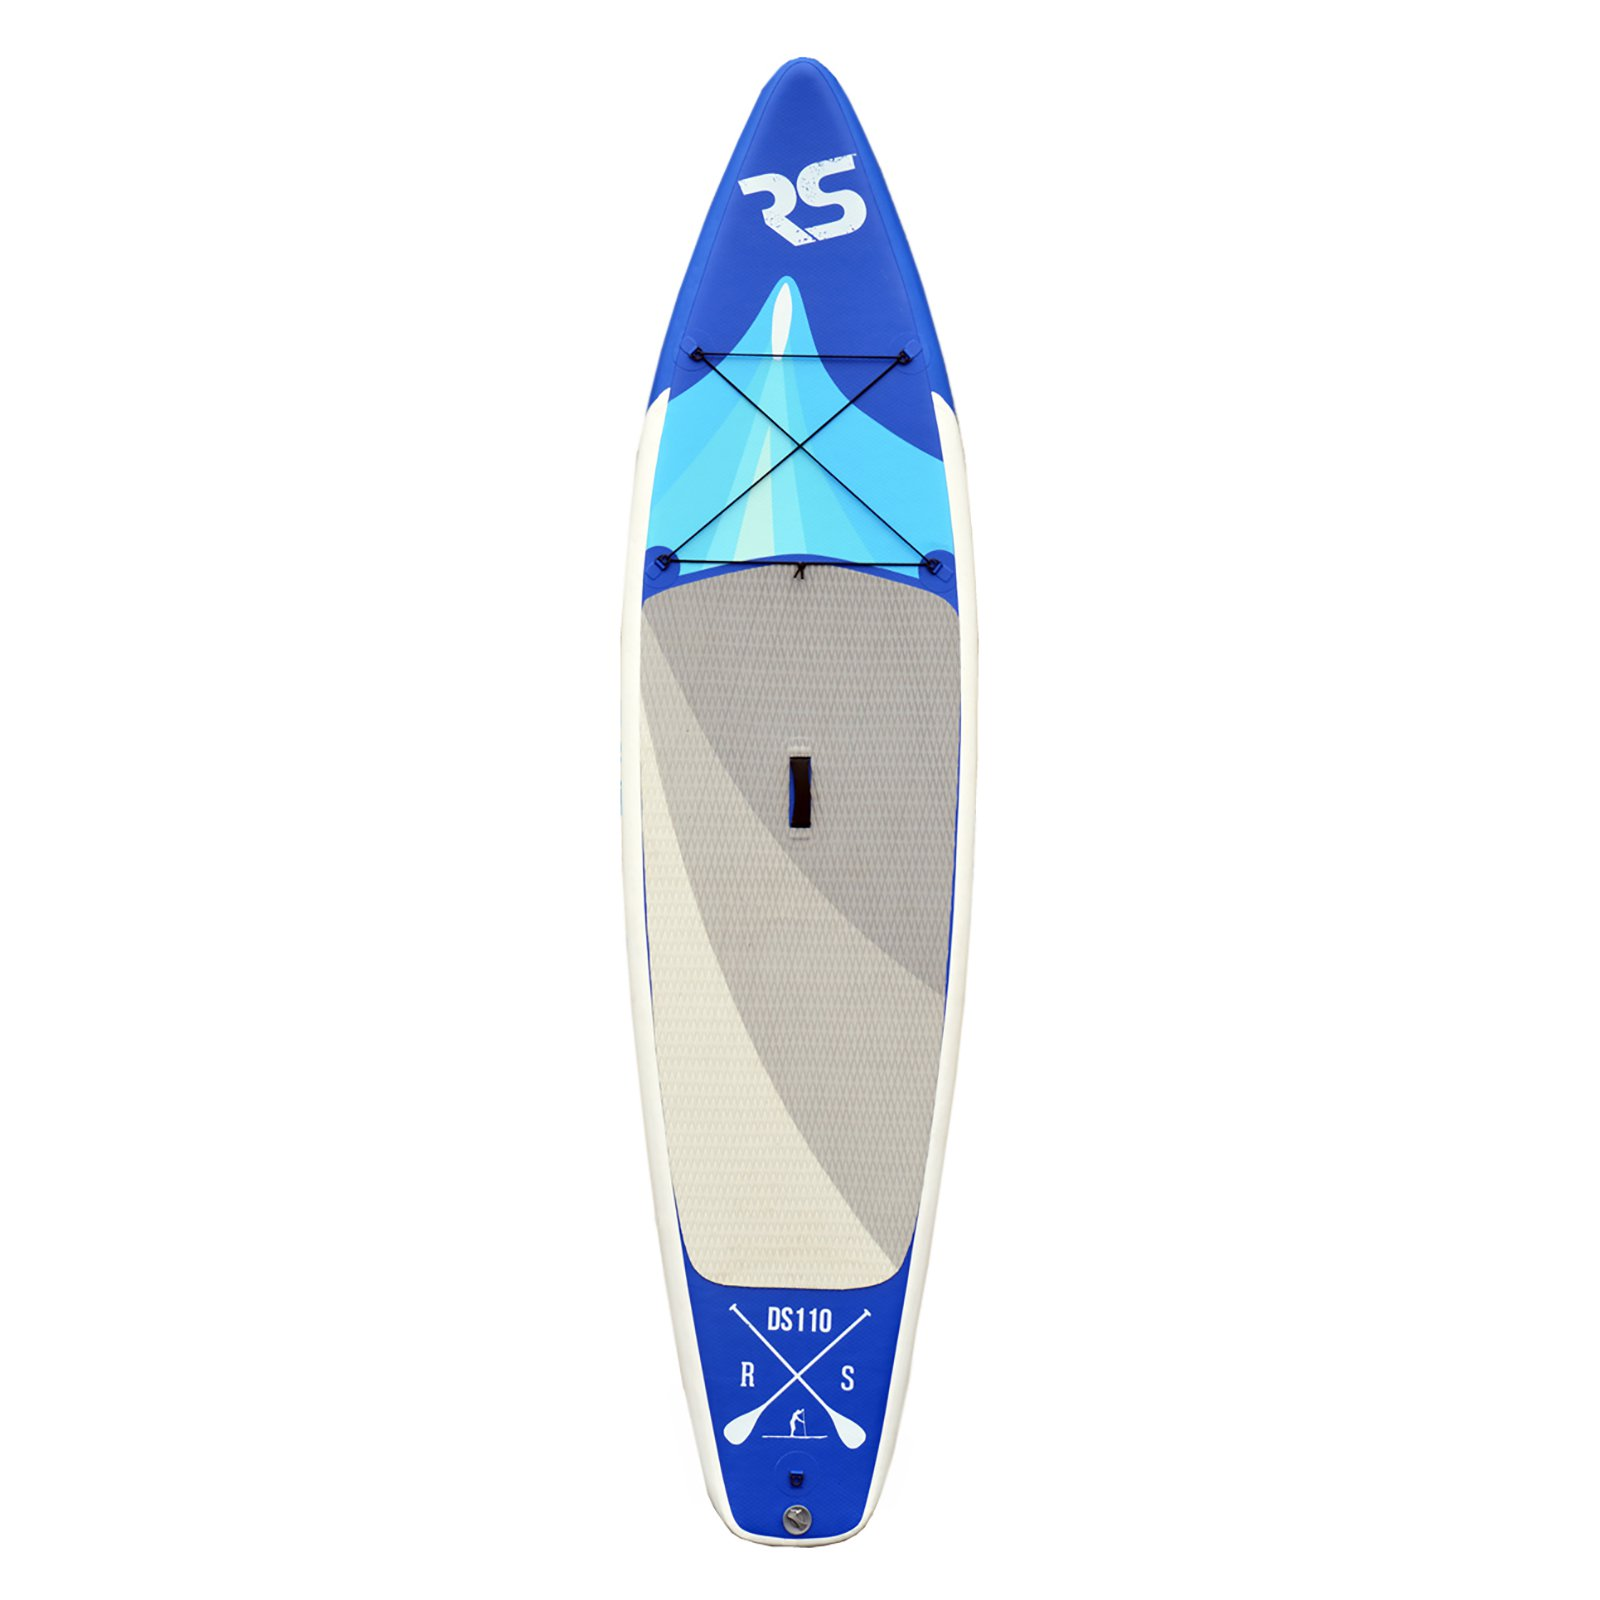 Rave Sports Nomad 6 in. Inflatable Stand Up Paddle Board by Rave Sports